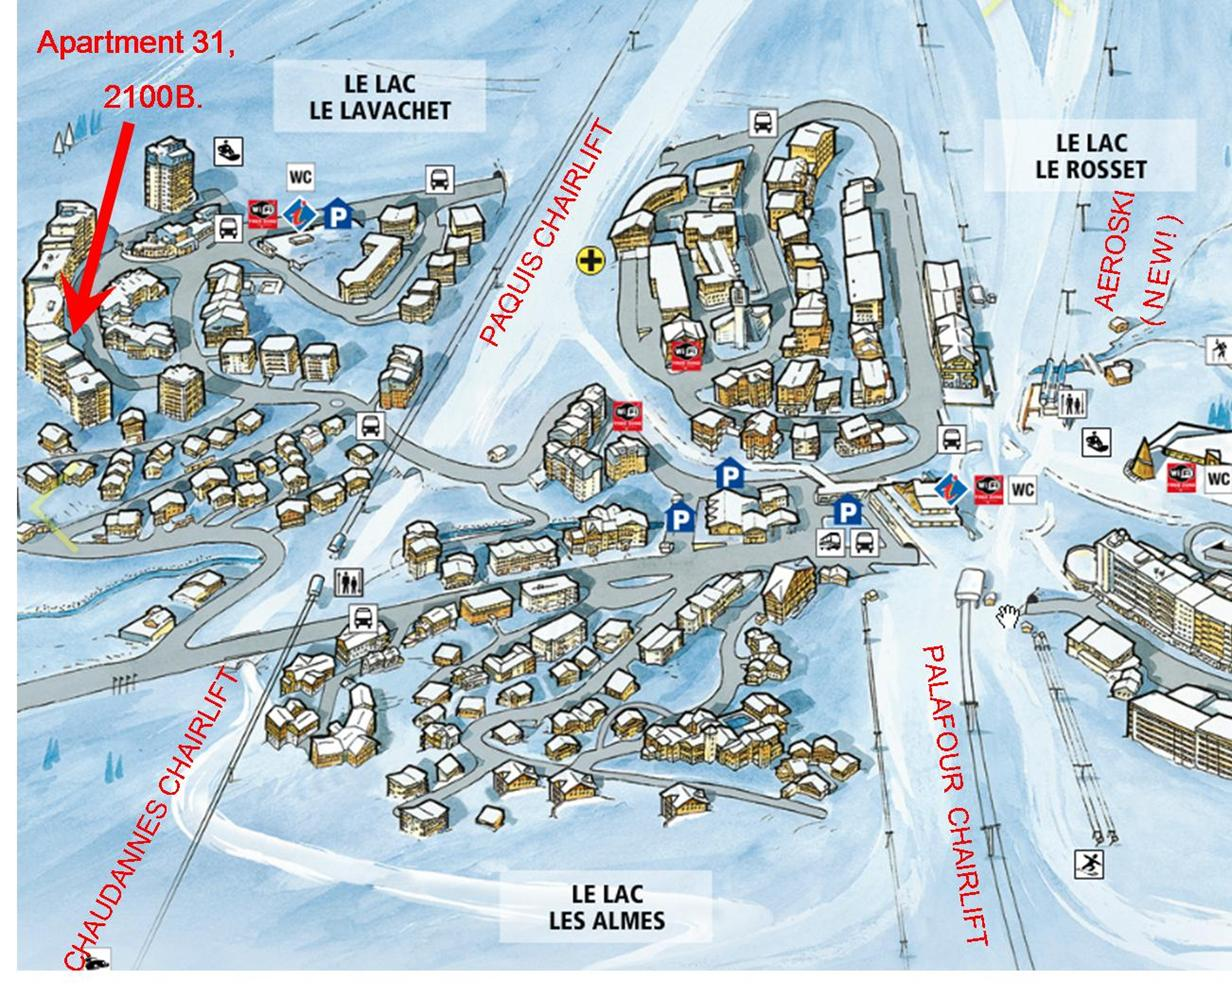 The TCC Info about selfcatered apartment Tignes Apartment 31